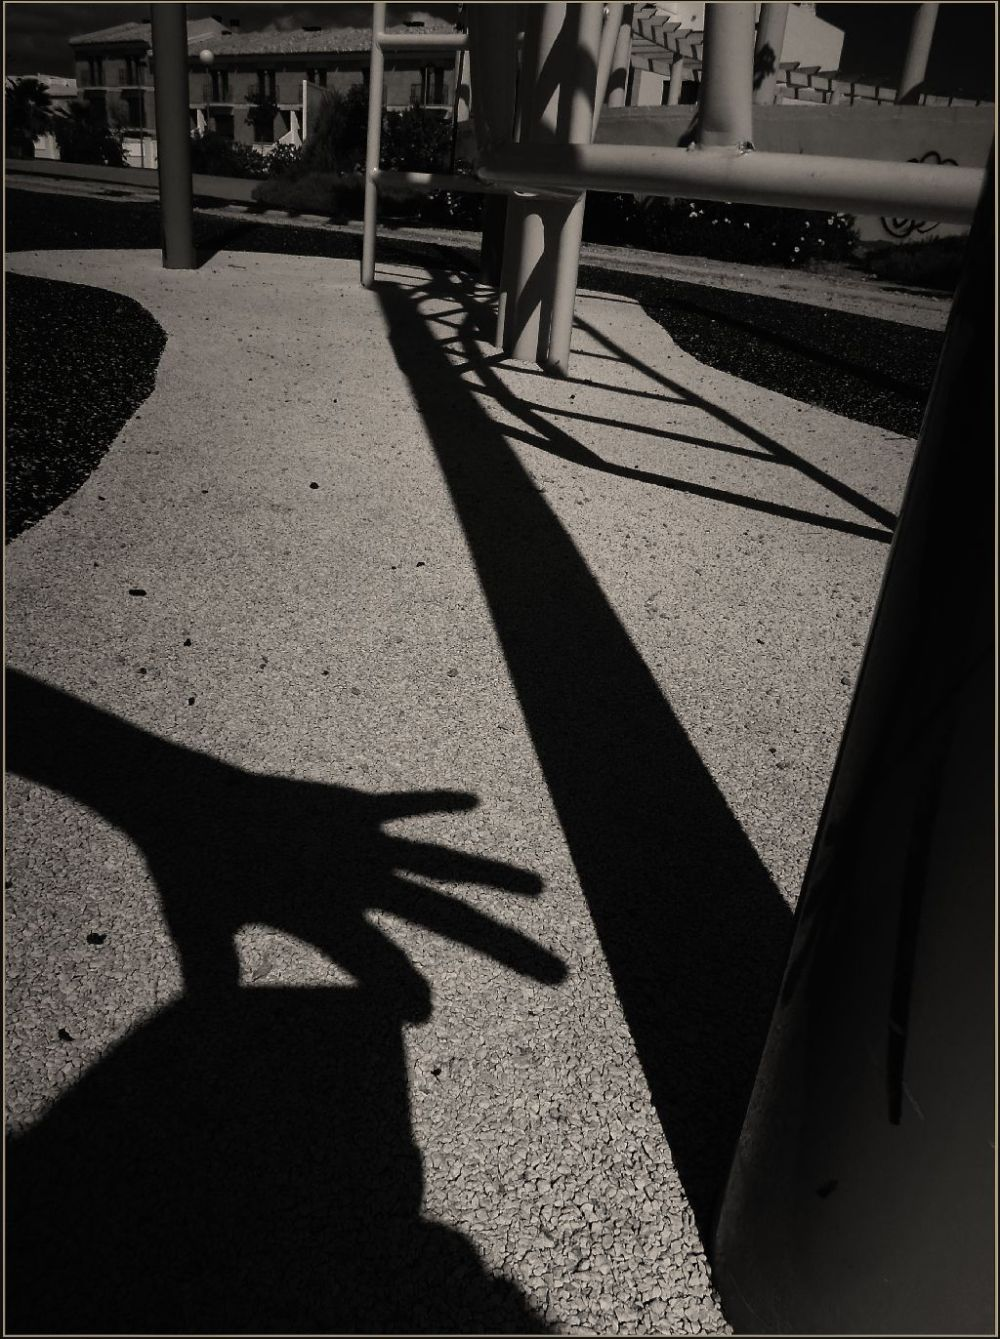 Shadow of My Hand